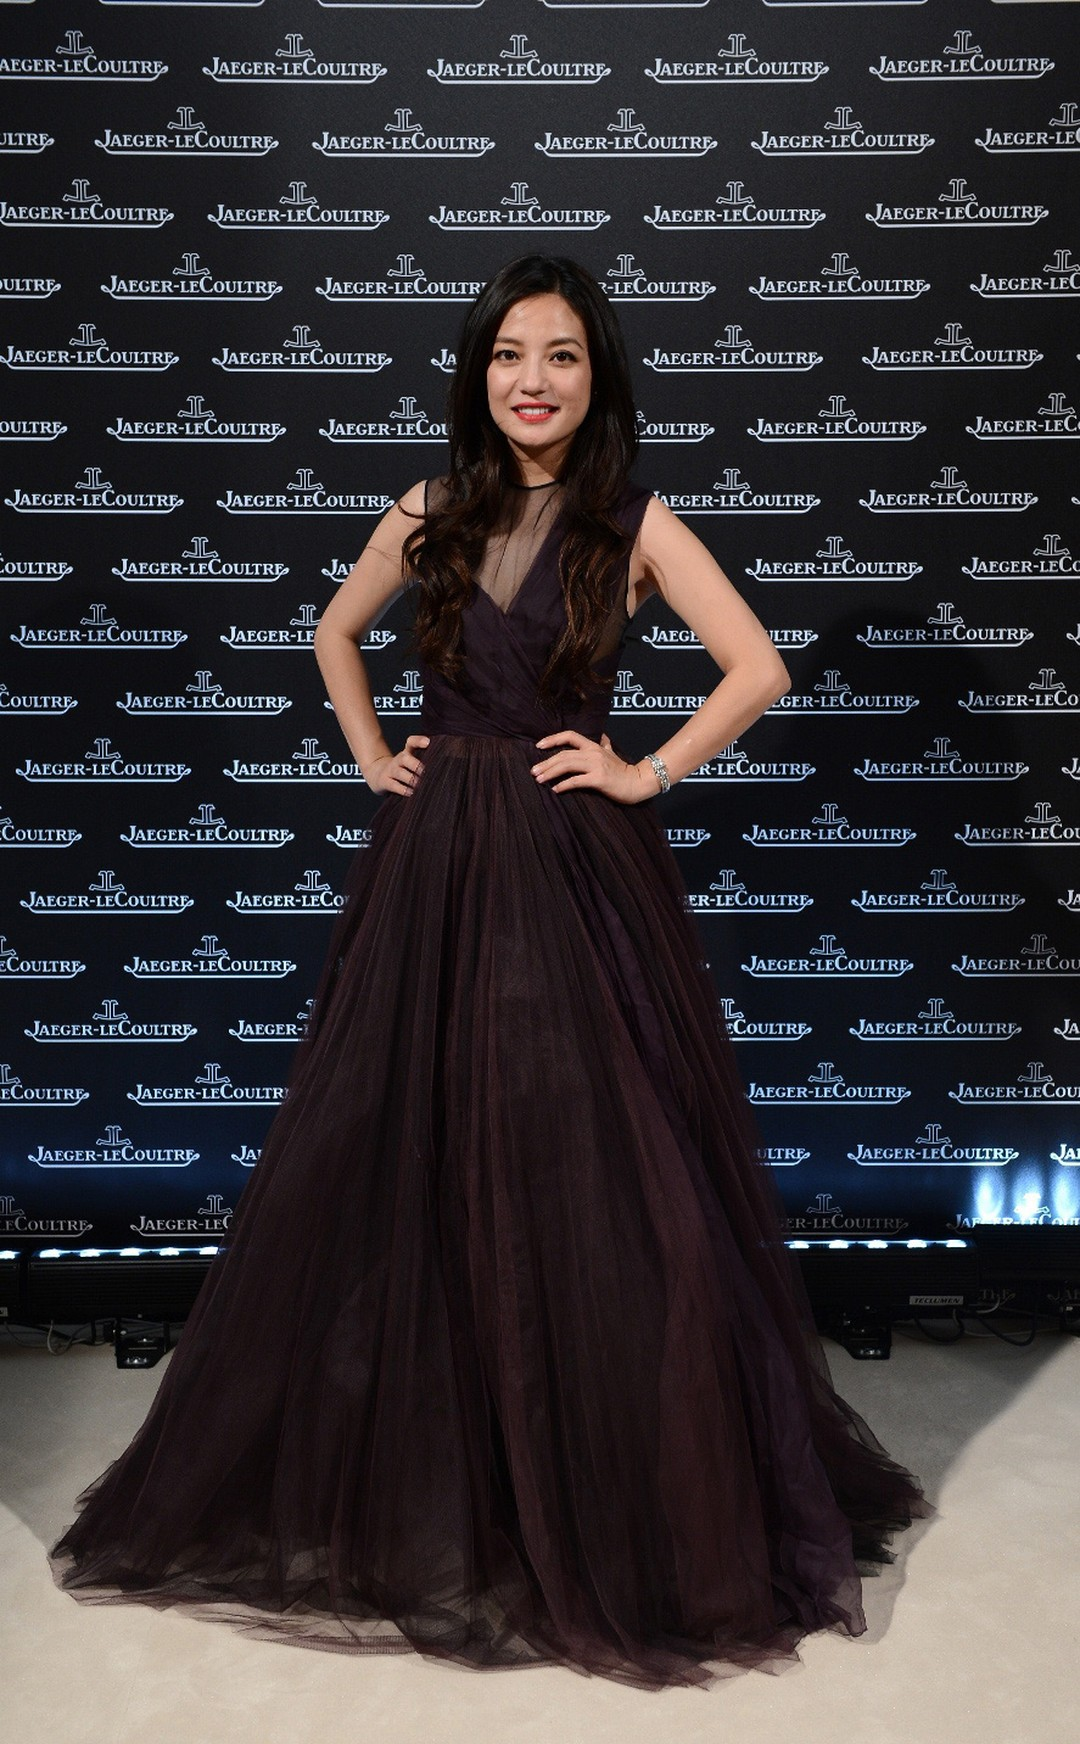 JLC-Zhao-Wei-at-Jaeger-LeCoultre-Rendez-Vous-in-Venice.jpg